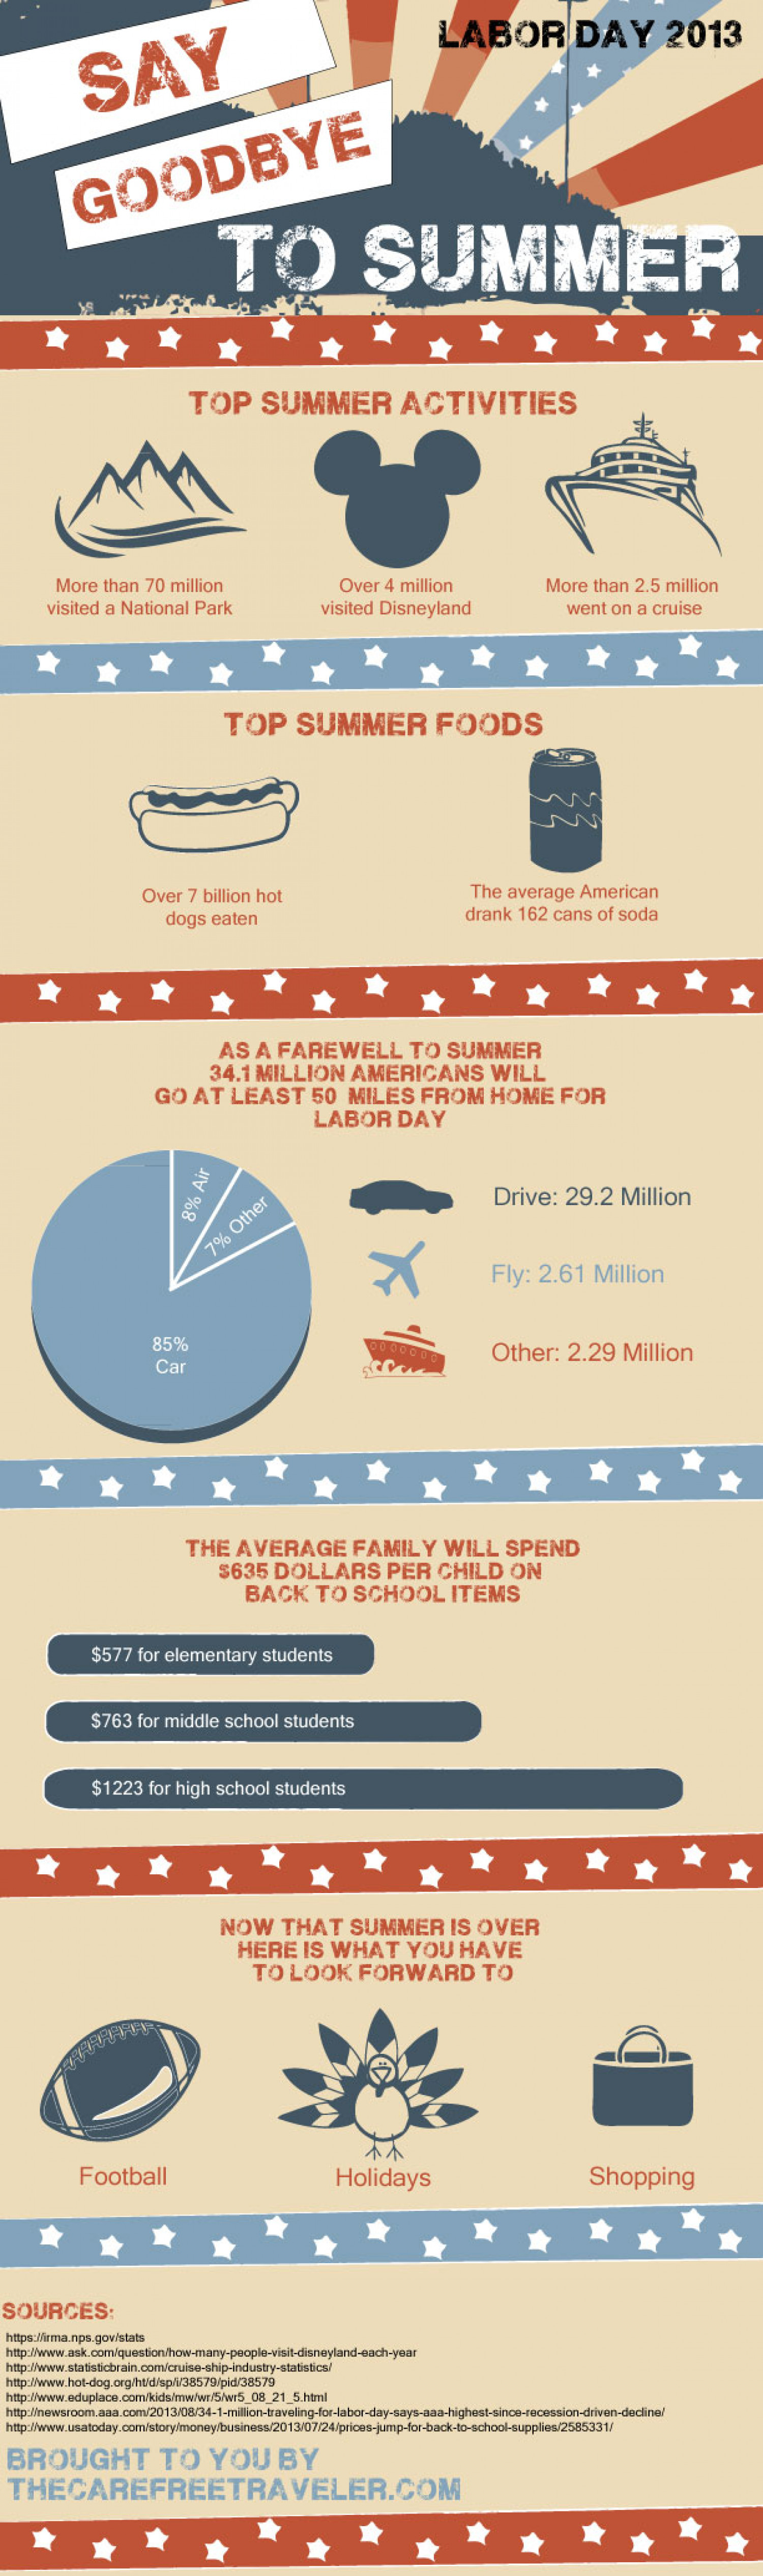 Say Goodbye to Summer Infographic